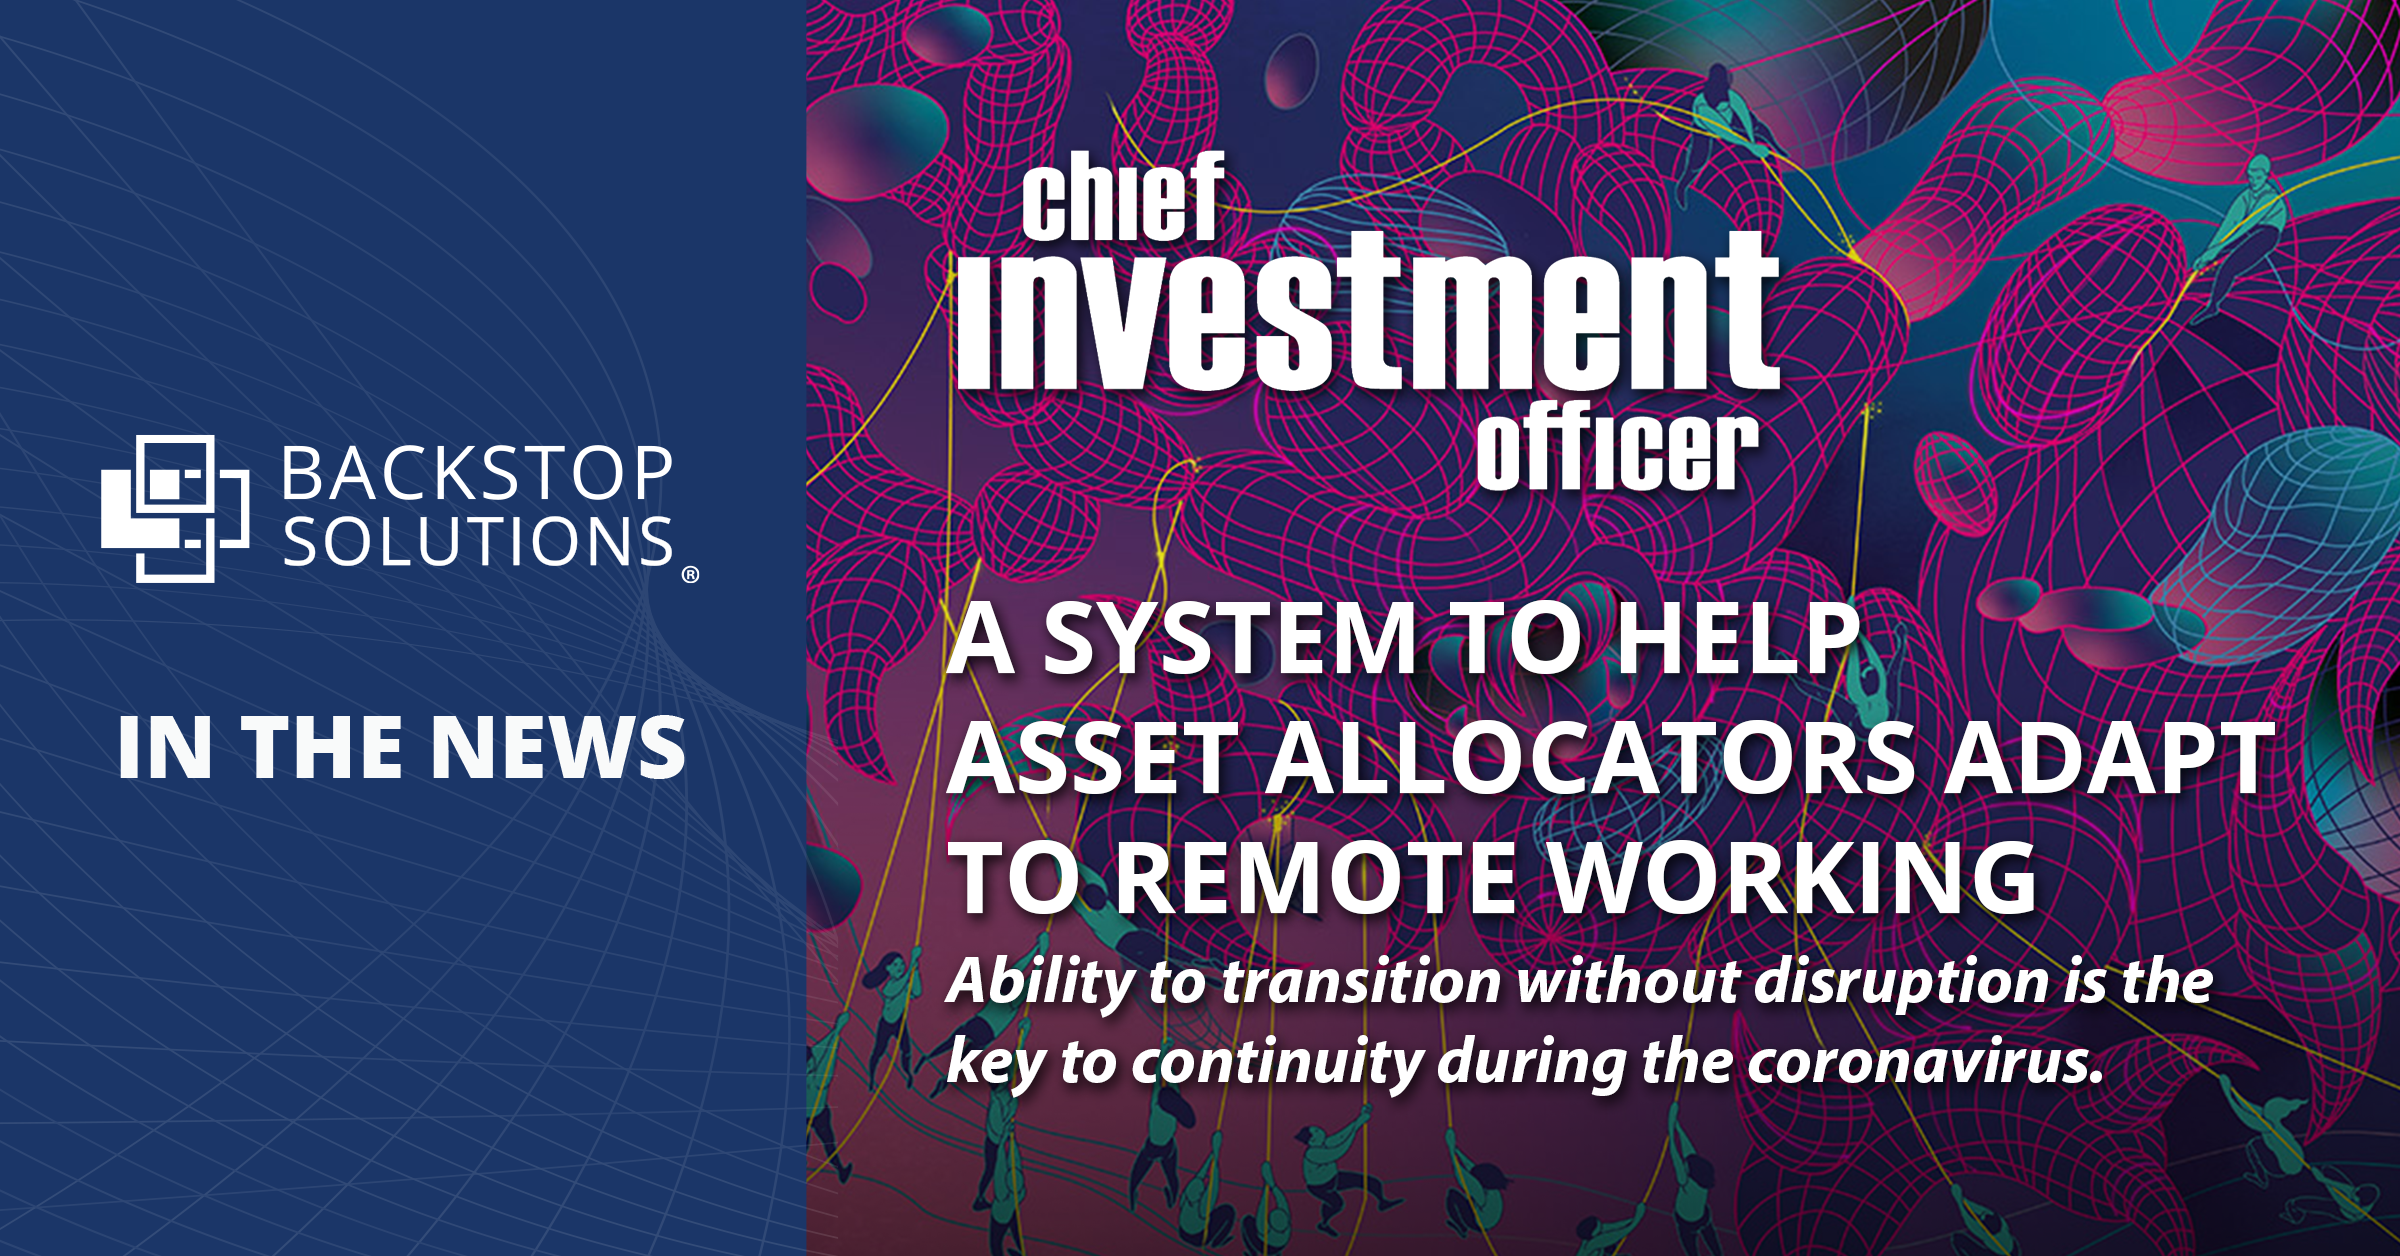 AI-CIO ARTICLE - A SYSTEM TO HELP ASSET ALLOCATORS ADAPT TO REMOTE WORKING